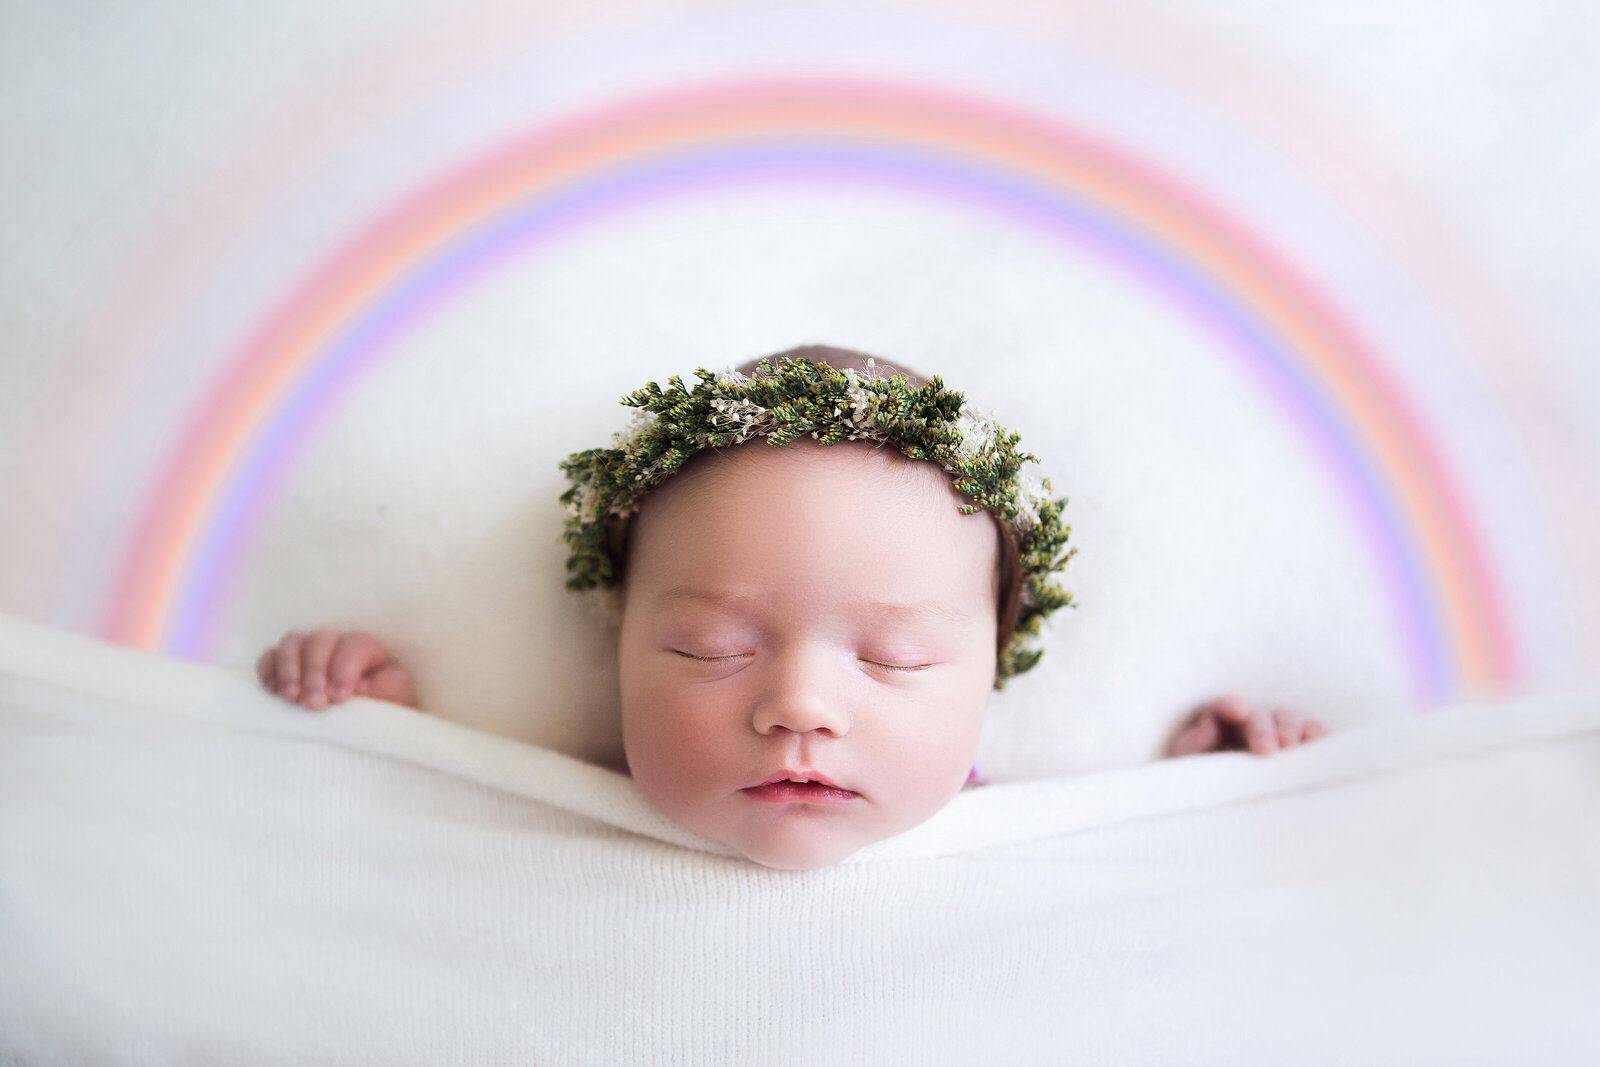 Professional studio portrait of baby asleep and rainbow